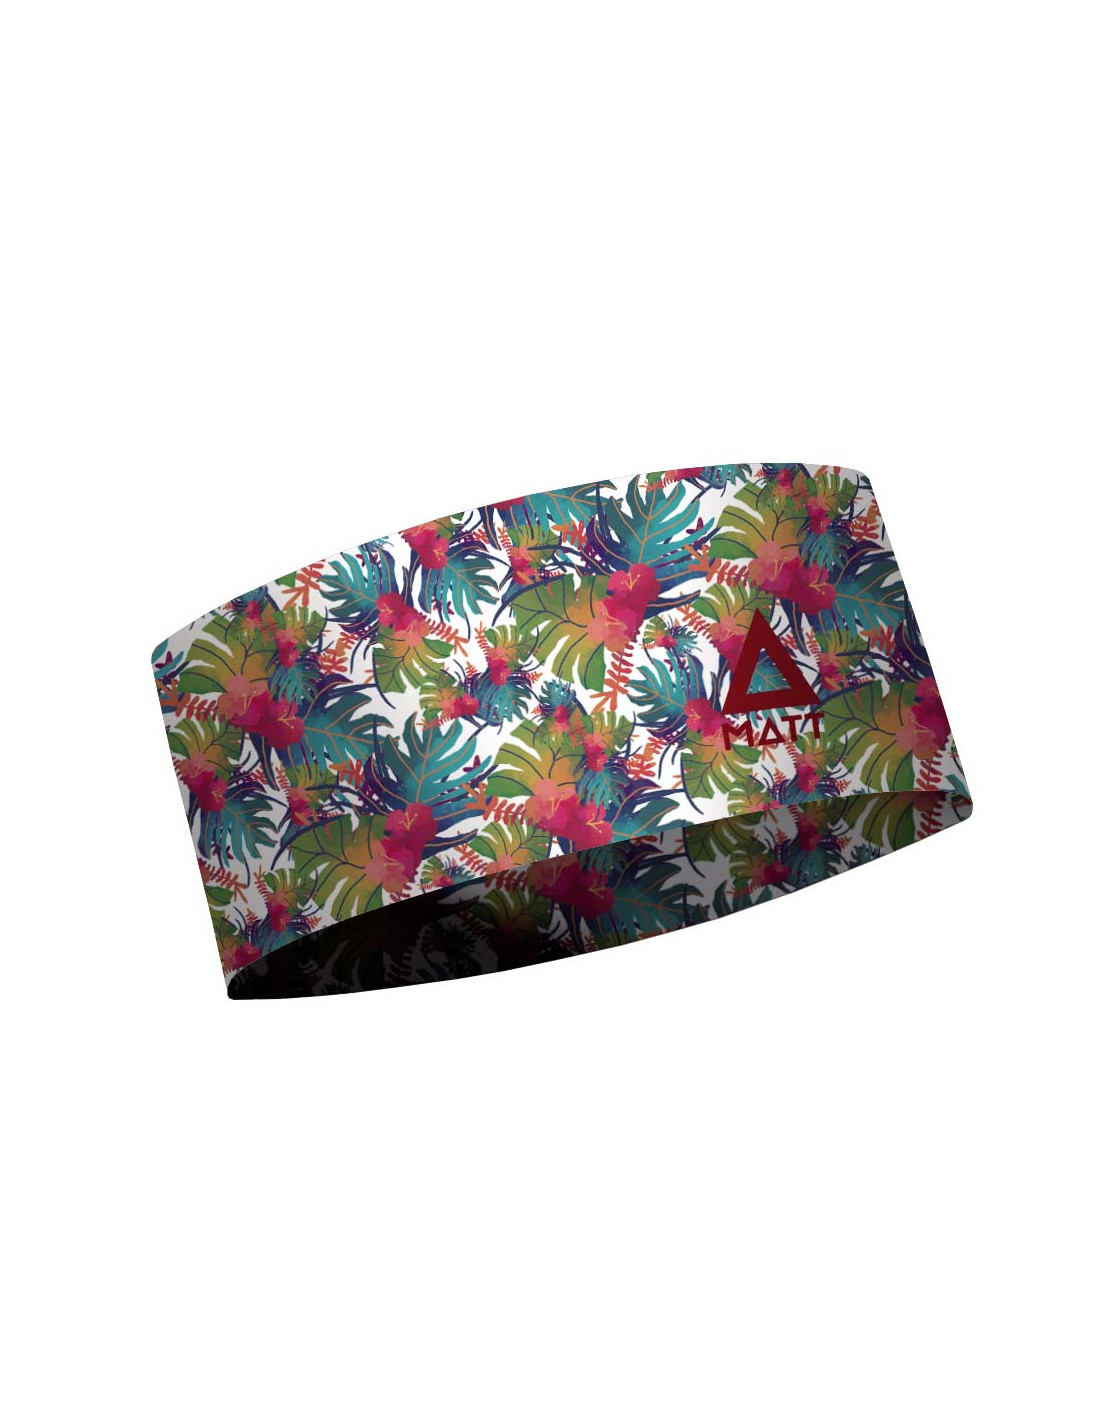 Headbands MATT THERMO HEADBAND FULLES -MULTICOLOR